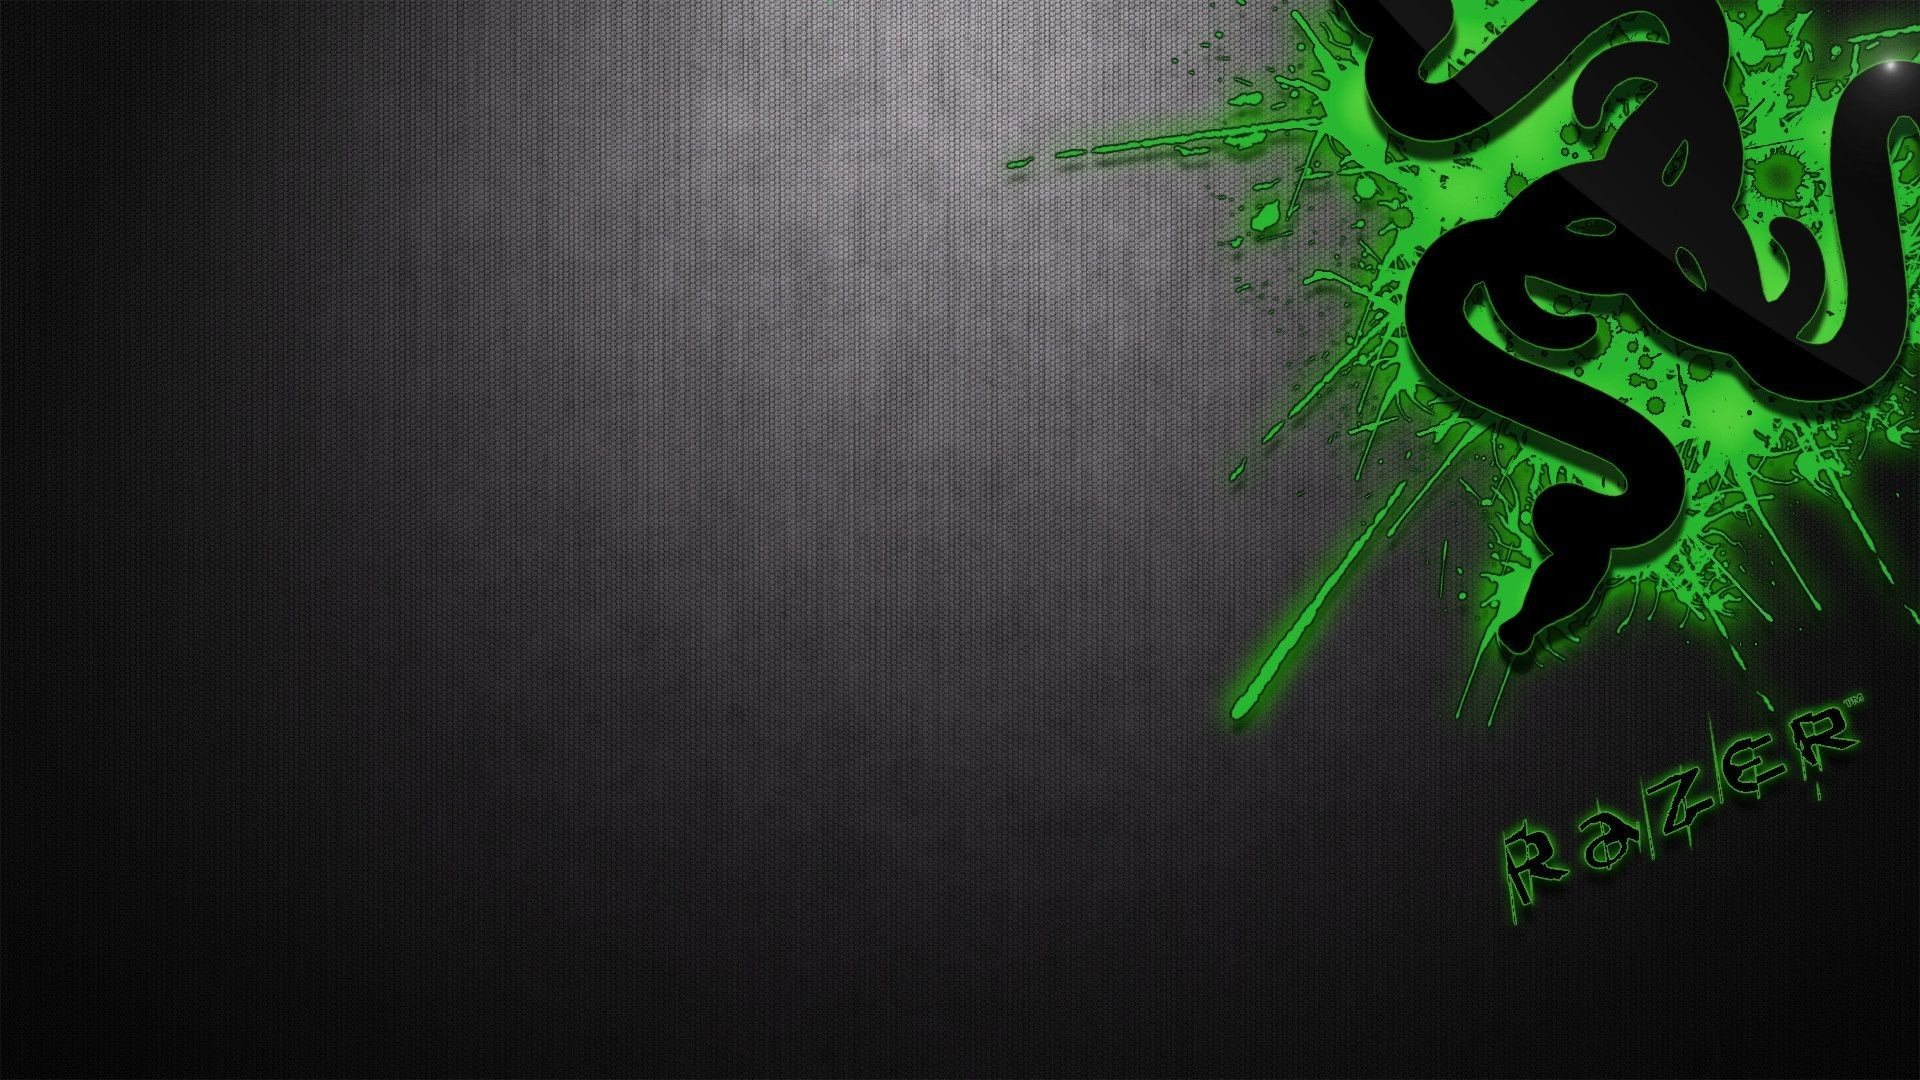 1920x1080 2560x1440 Space / Neon Green Wallpaper